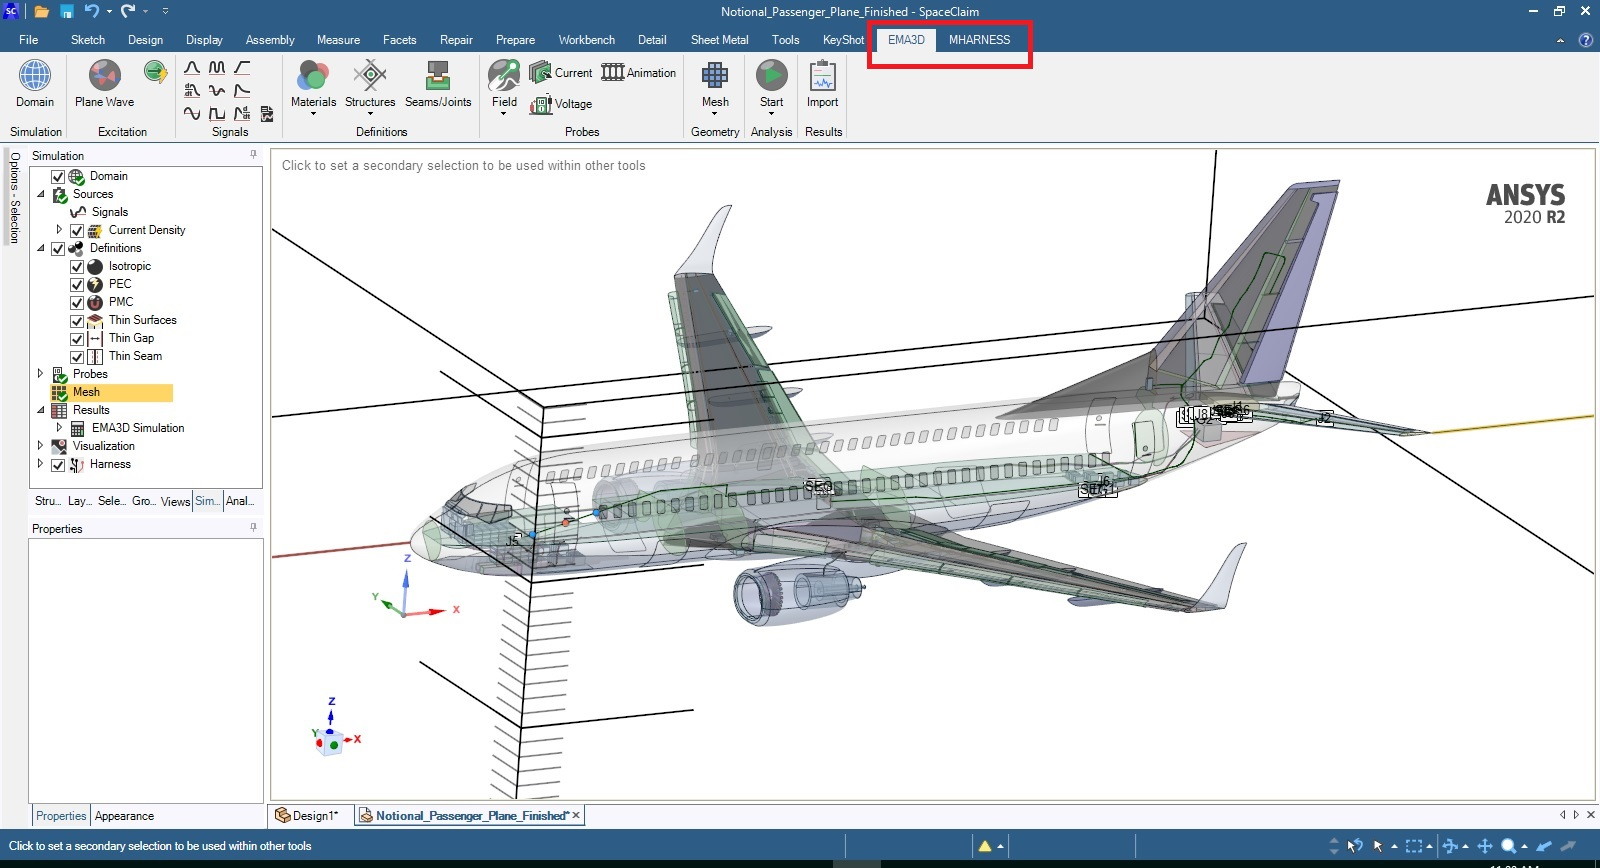 Working with ANSYS EMA3D Cable 2020 R2 full license